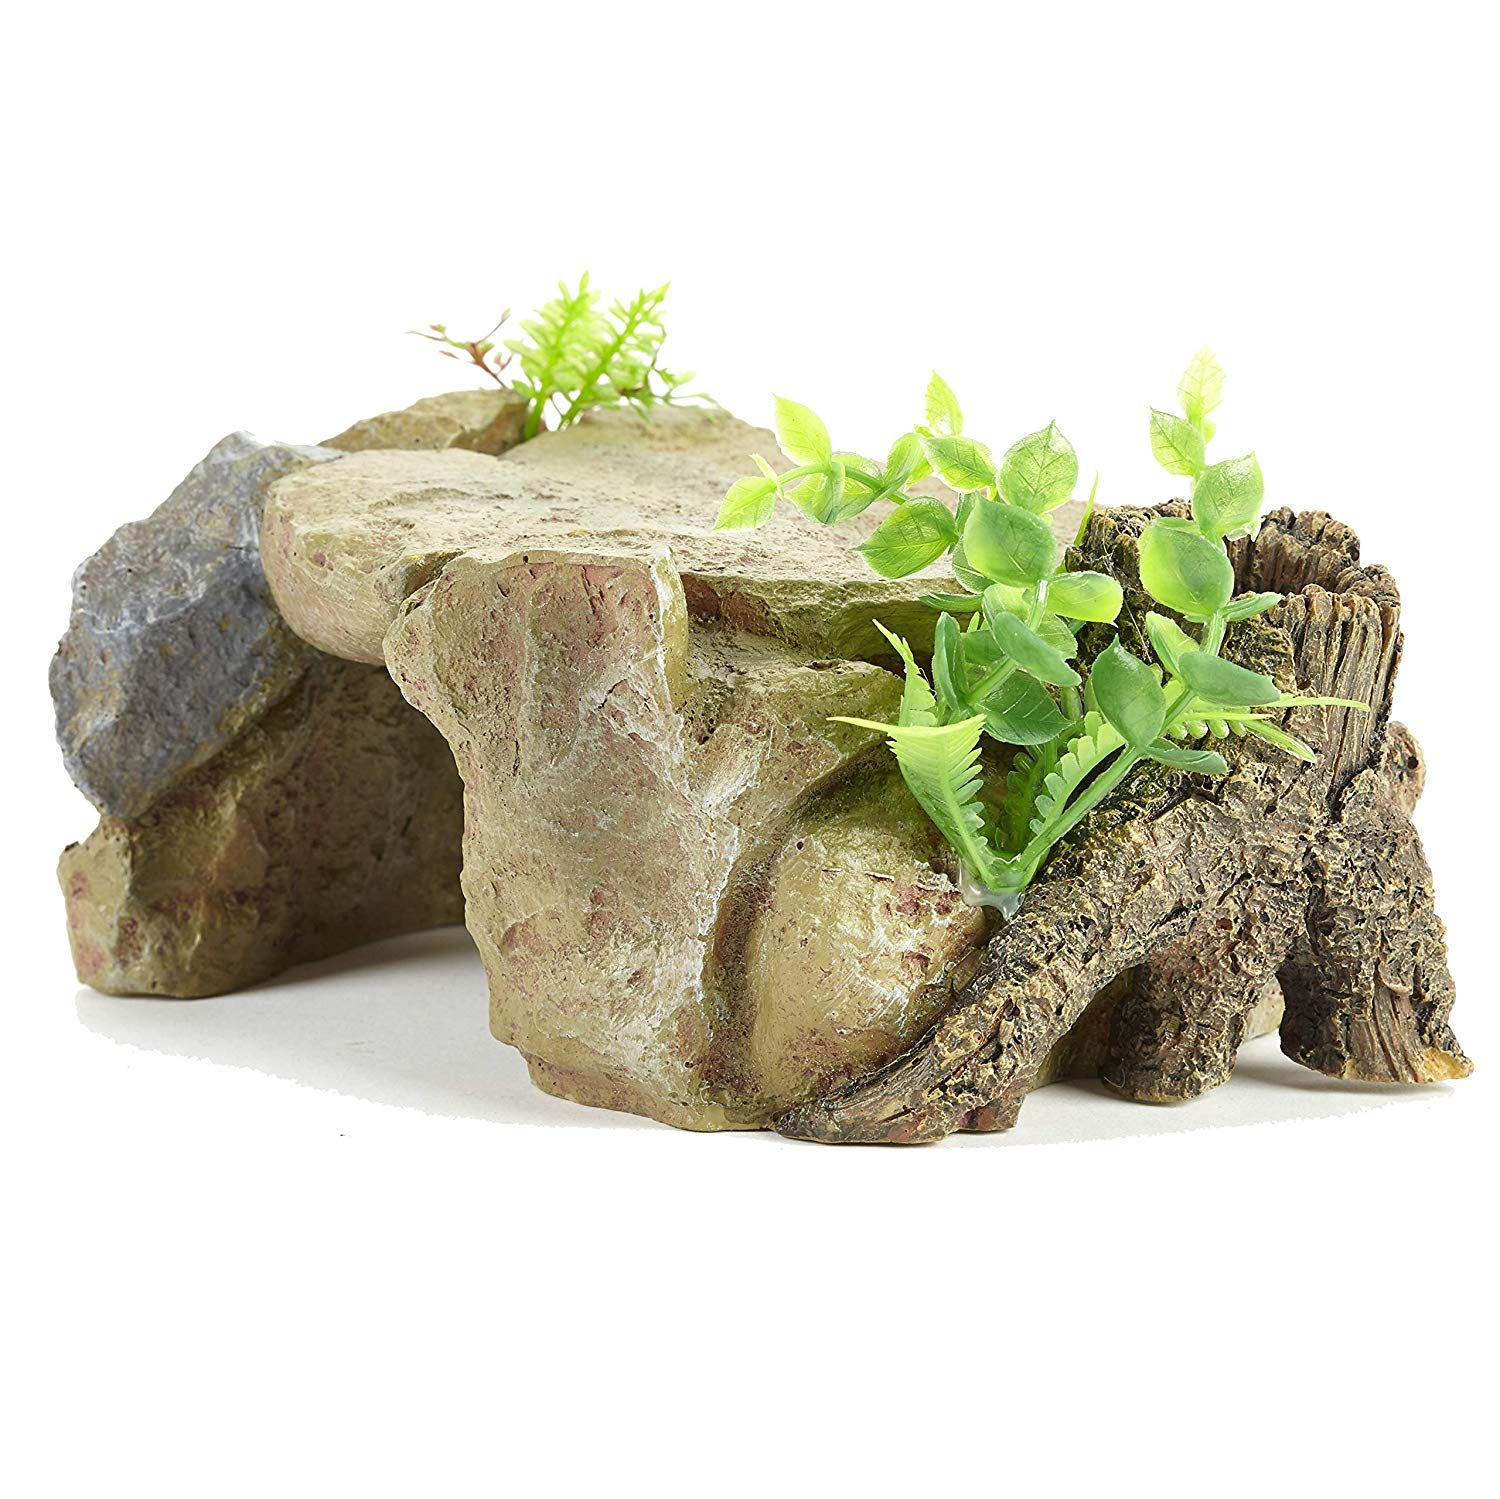 Pet Ting Hidden Cave With Stump Ornament Reptile And Fish Decoration Hide Out Rock Amazon Co Uk Pet Supplies Fishing Decor Reptiles Fish Supplies